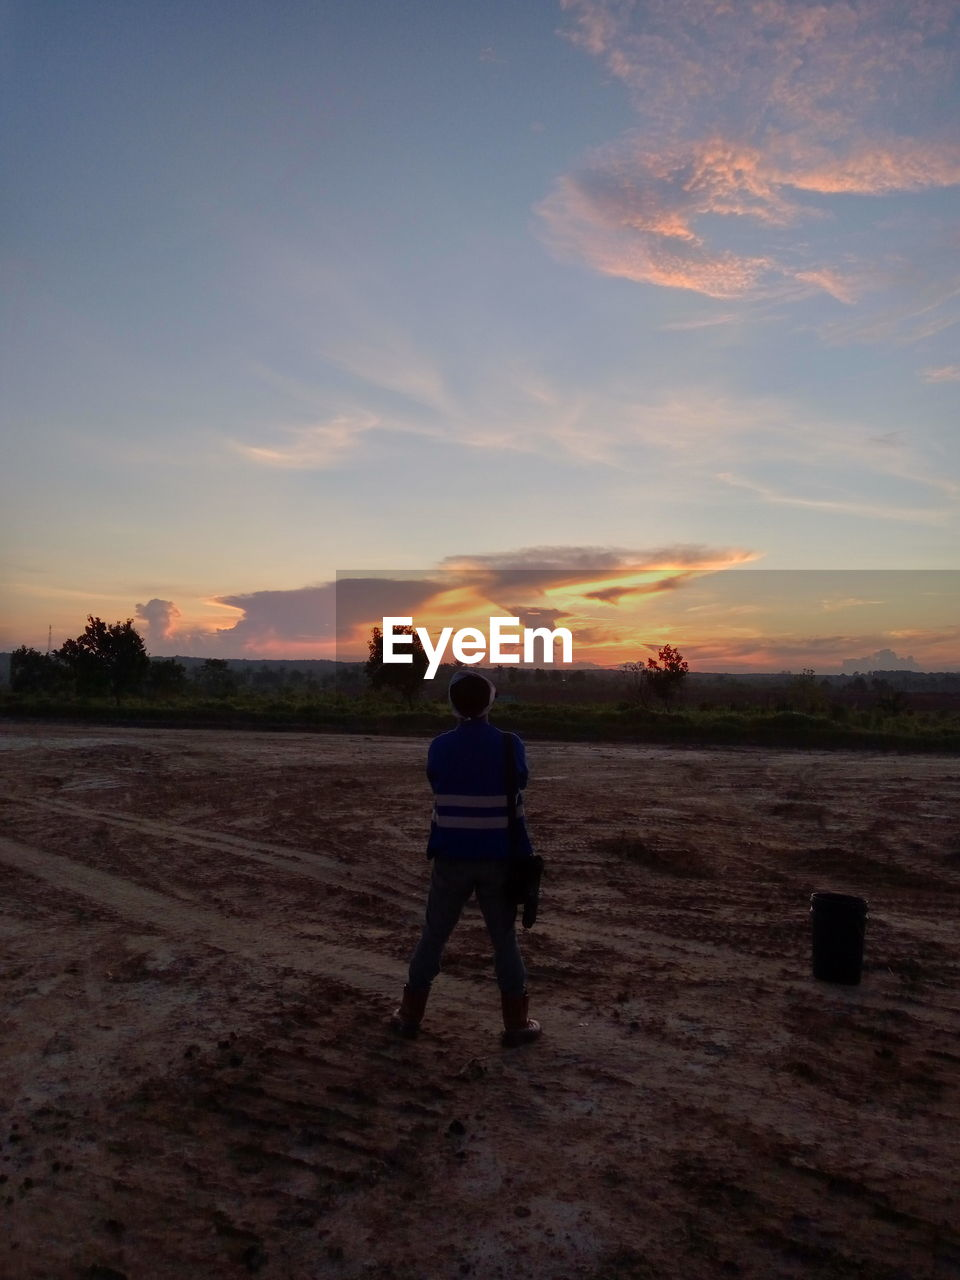 sky, sunset, one person, rear view, cloud - sky, real people, full length, nature, scenics - nature, beauty in nature, land, leisure activity, lifestyles, standing, field, men, tranquil scene, tranquility, environment, outdoors